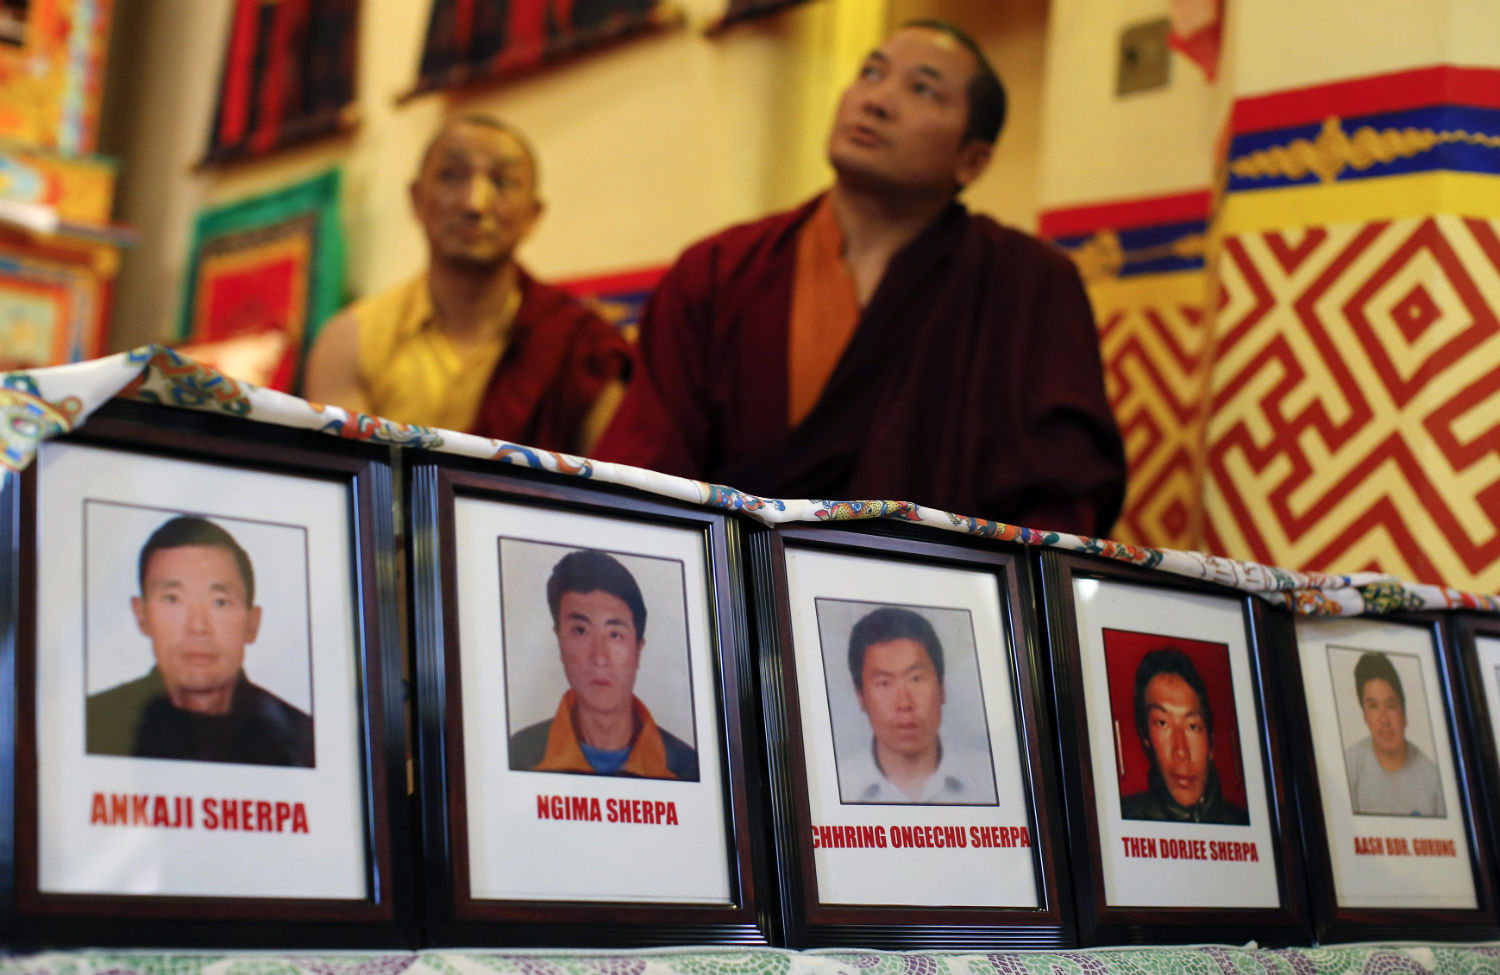 Pictures-of-Sherpa-members-are-displayed-while-Buddhist-monks-hold-a-prayer-service-for-those-killed